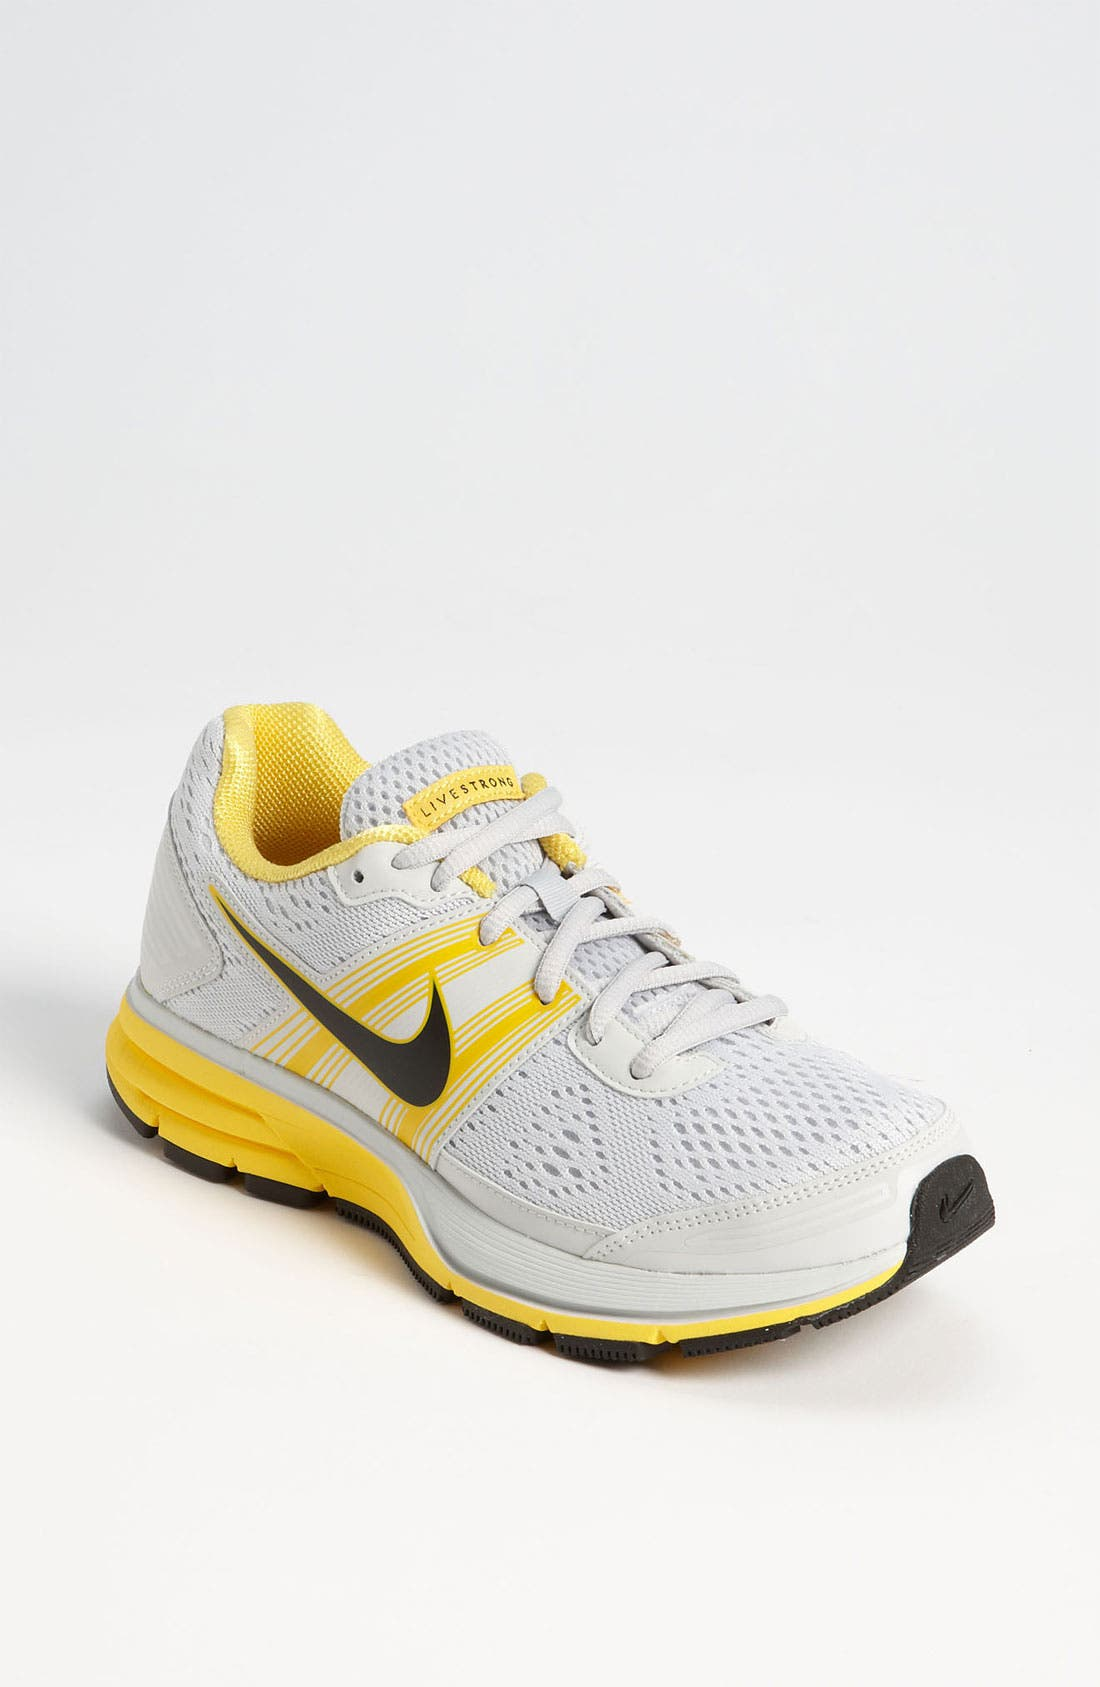 Main Image - Nike 'Air Pegasus + 29 Livestrong' Running Shoe (Women)